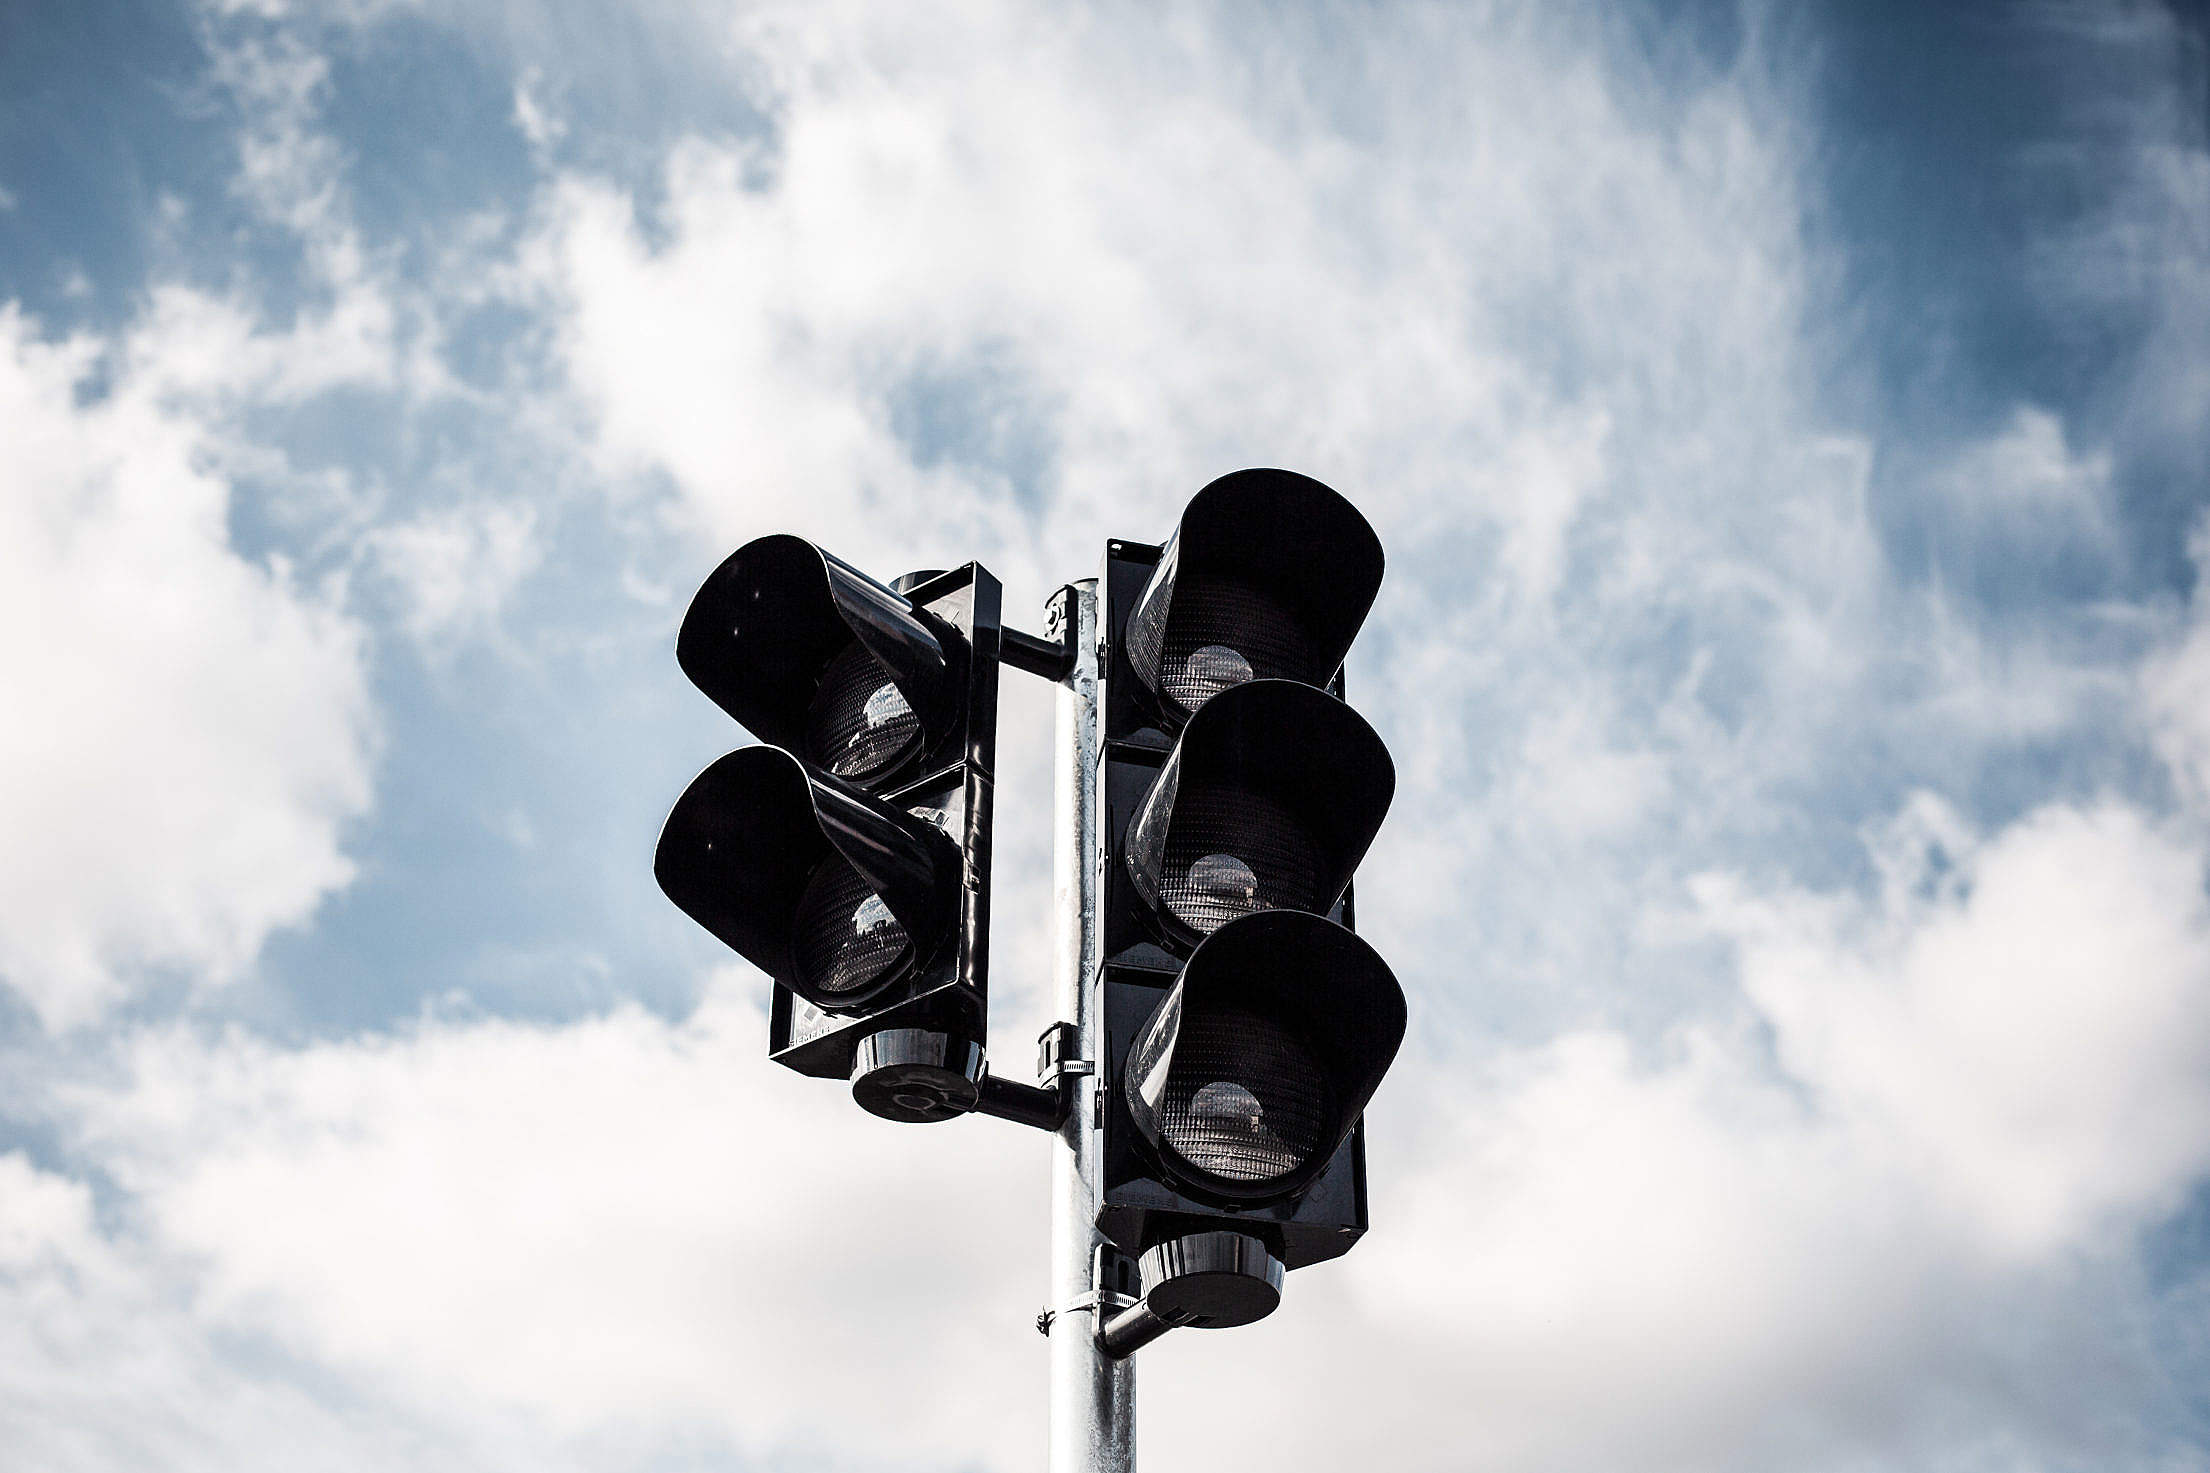 Traffic Lights and Sky With Clouds Free Stock Photo